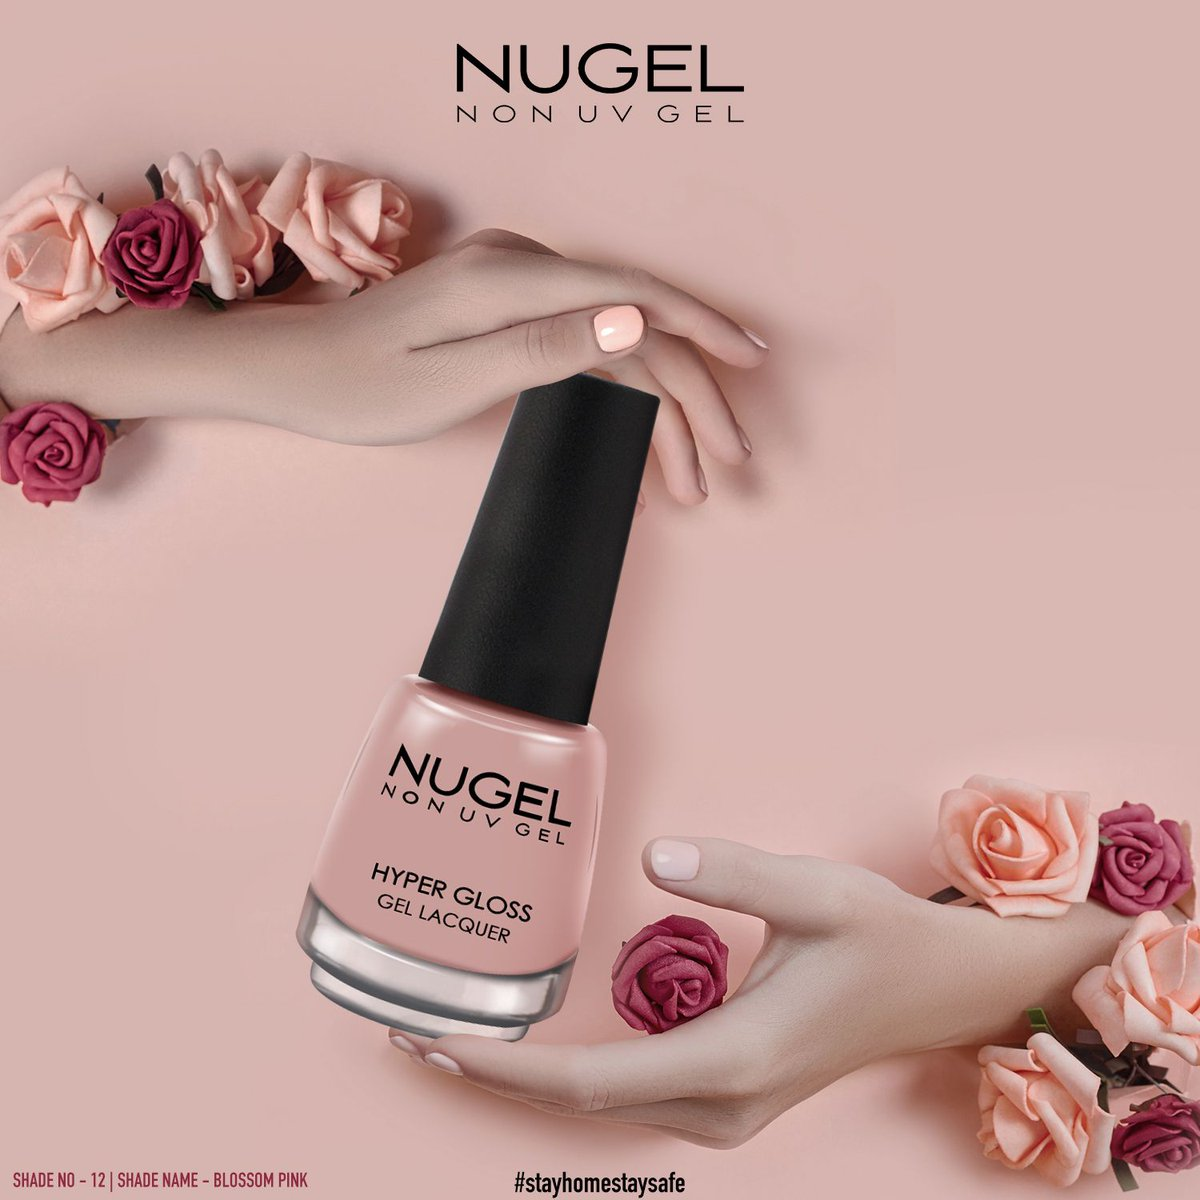 Are you religious? Because you're the answer to all my prayers. . Can you feel it too? . . . #nugelnonuvgel #nailsonfleek #flirtynails #nugelobsession #nailtrends #indiannailbloggerspic.twitter.com/PRUkVbM1jR